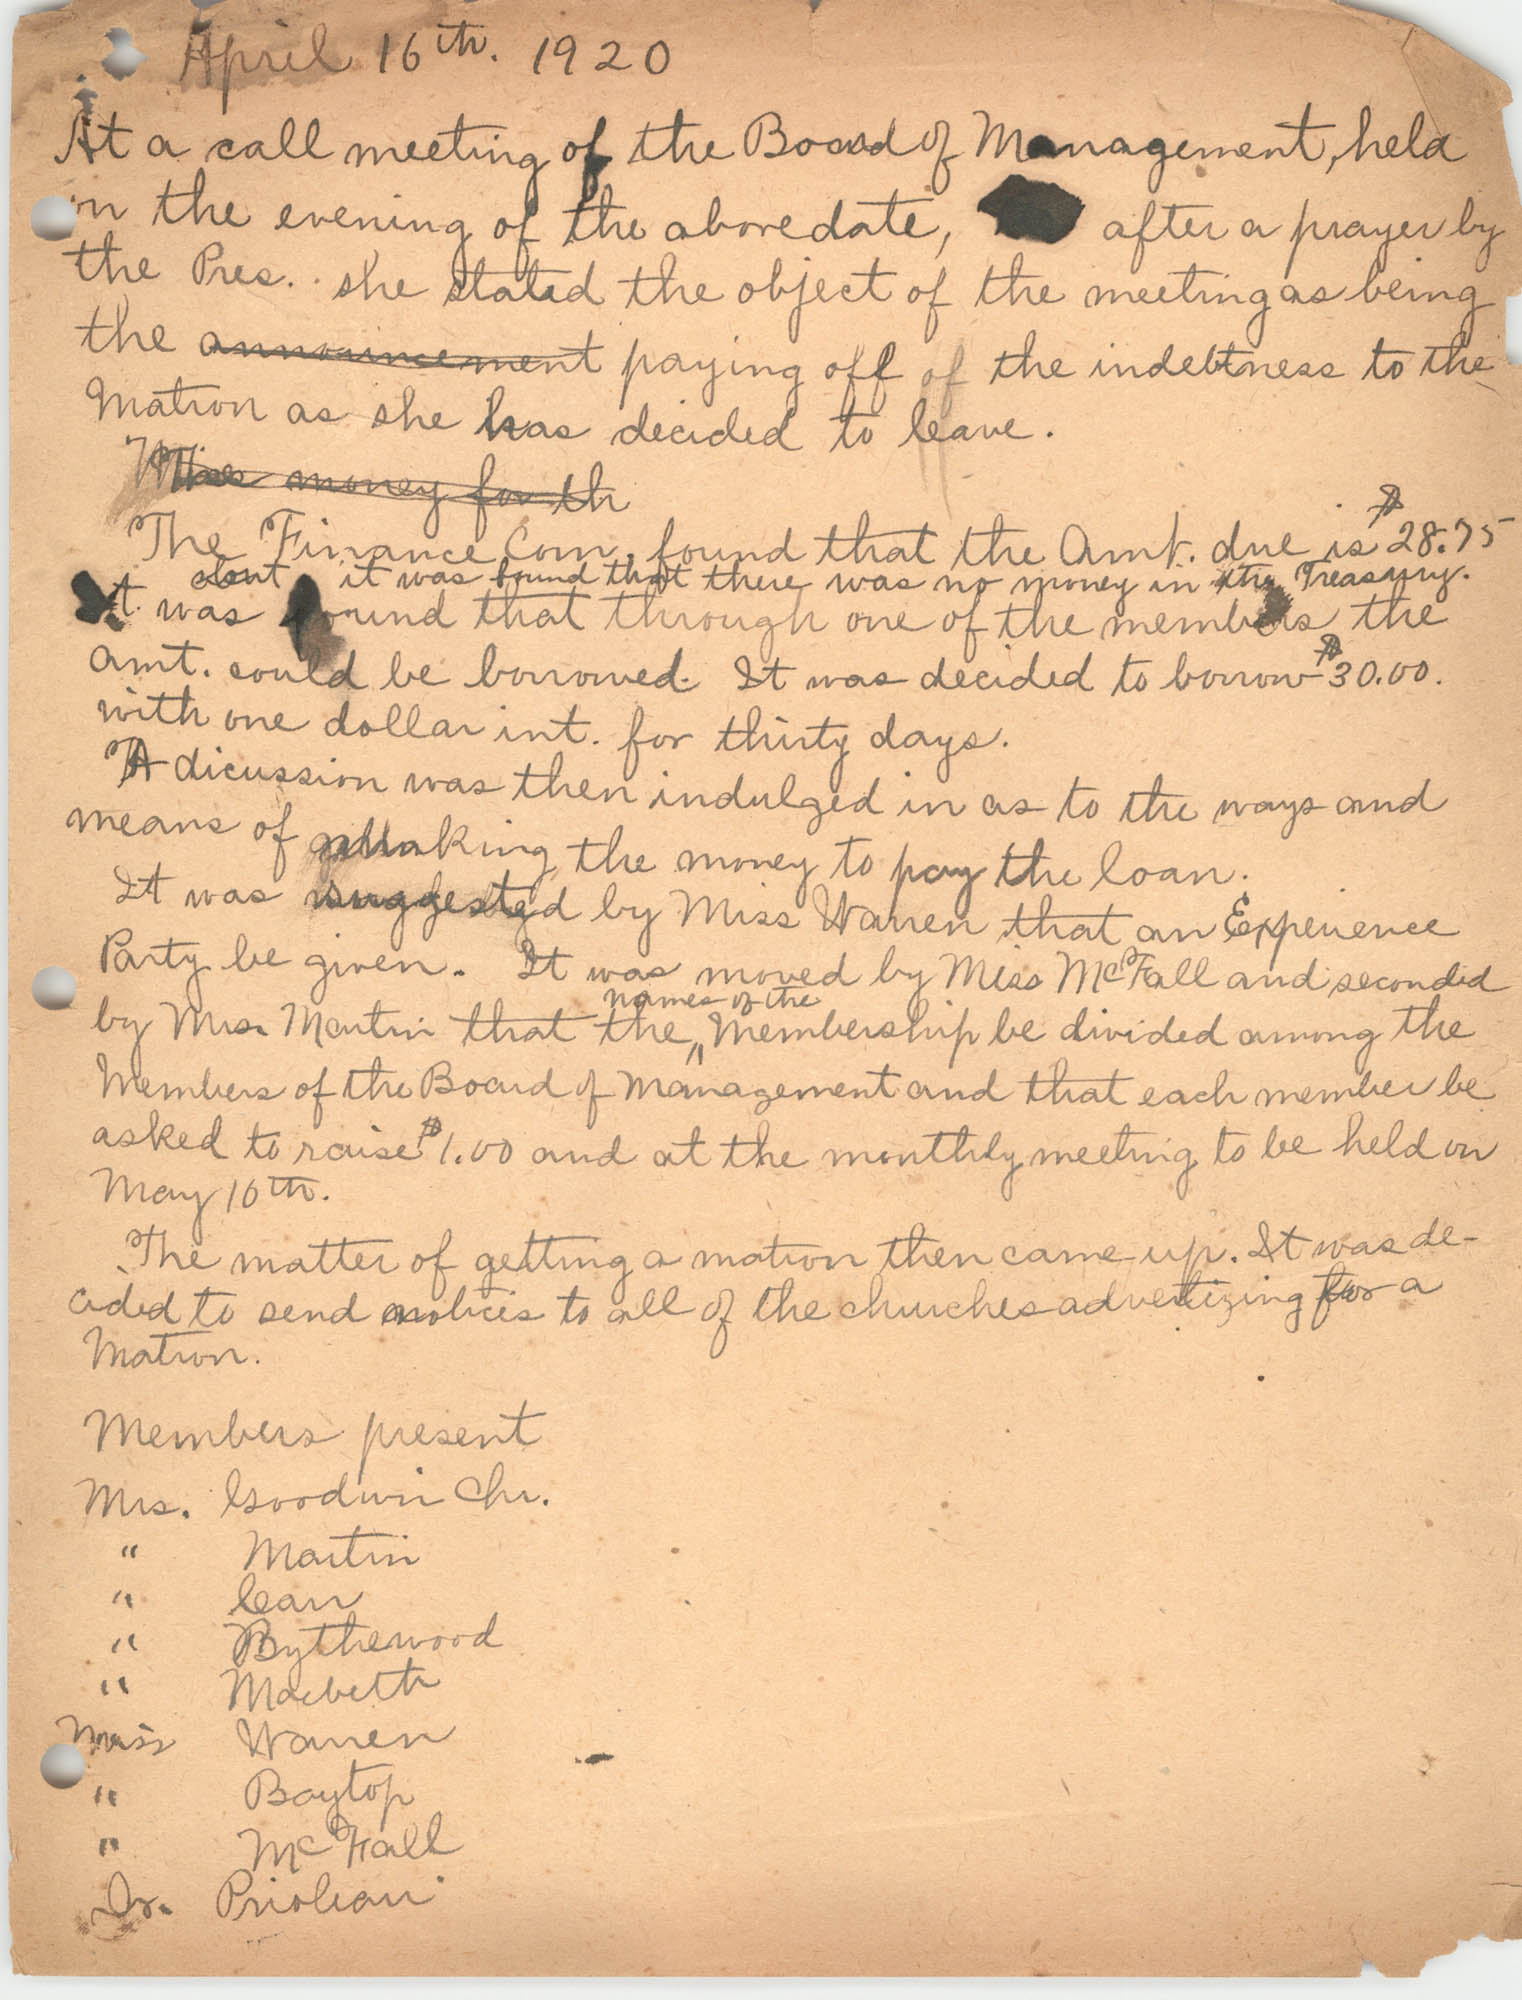 Minutes to the Board of Management, Coming Street Y.W.C.A., May 7, 1920